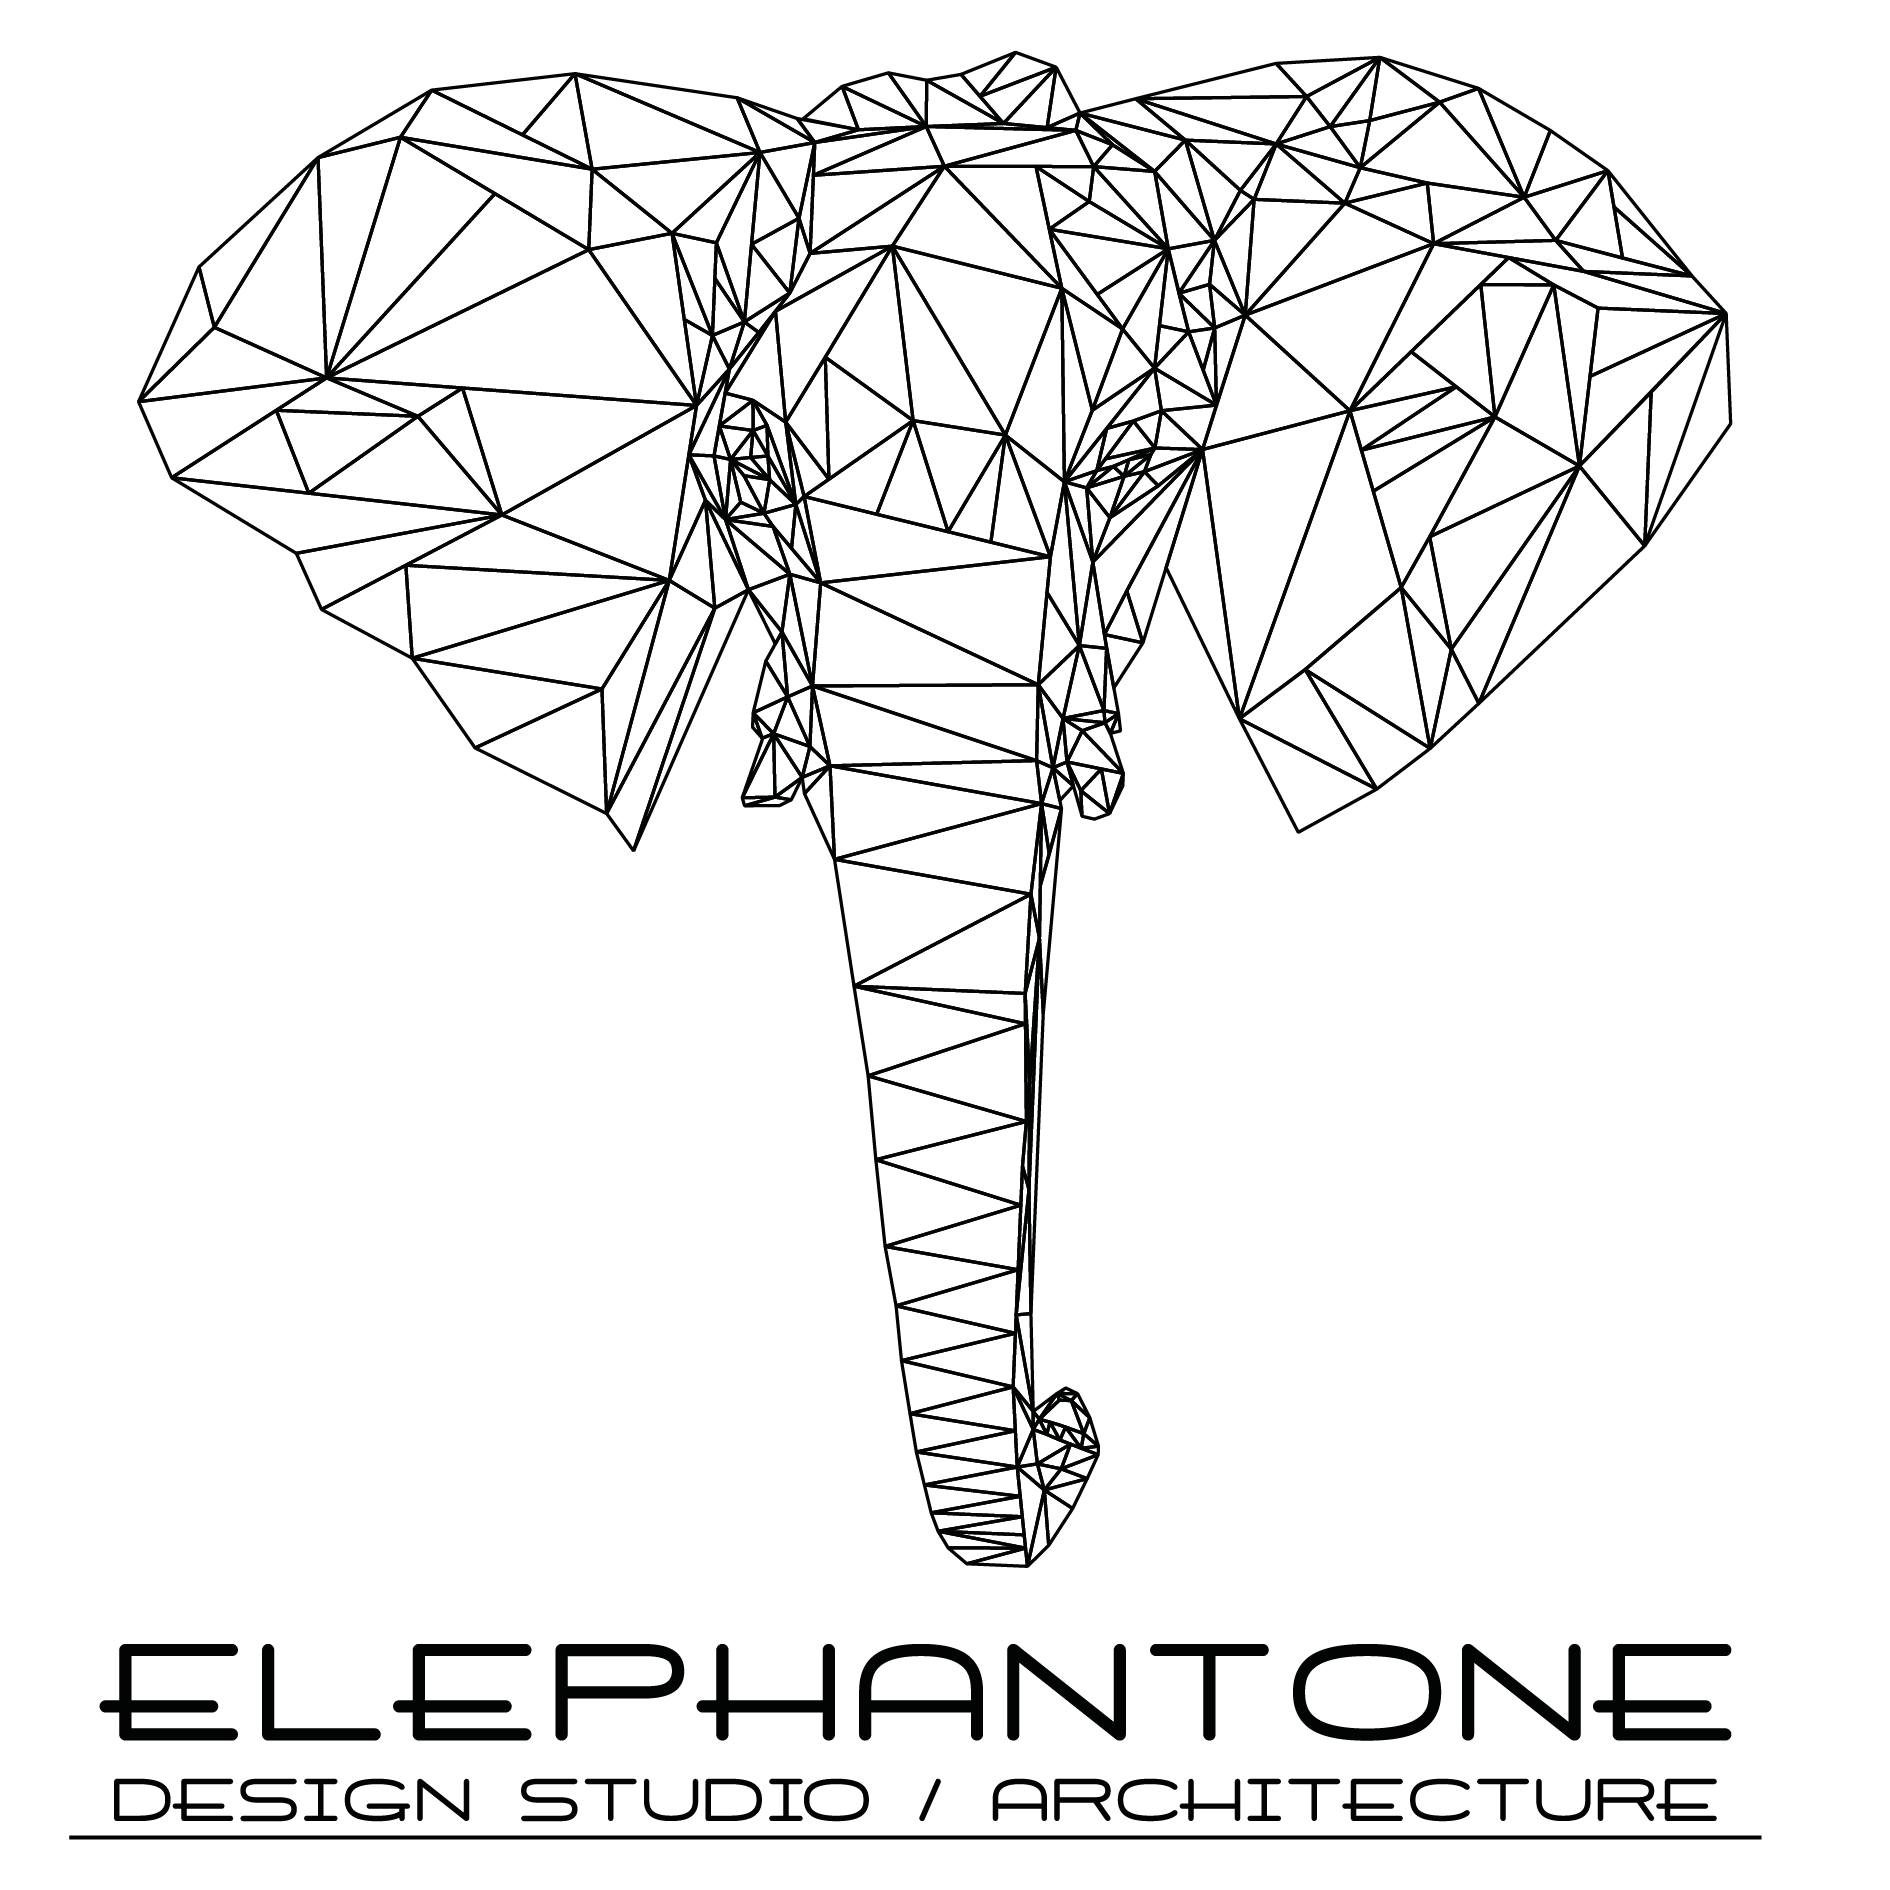 Elephantone Design Studio